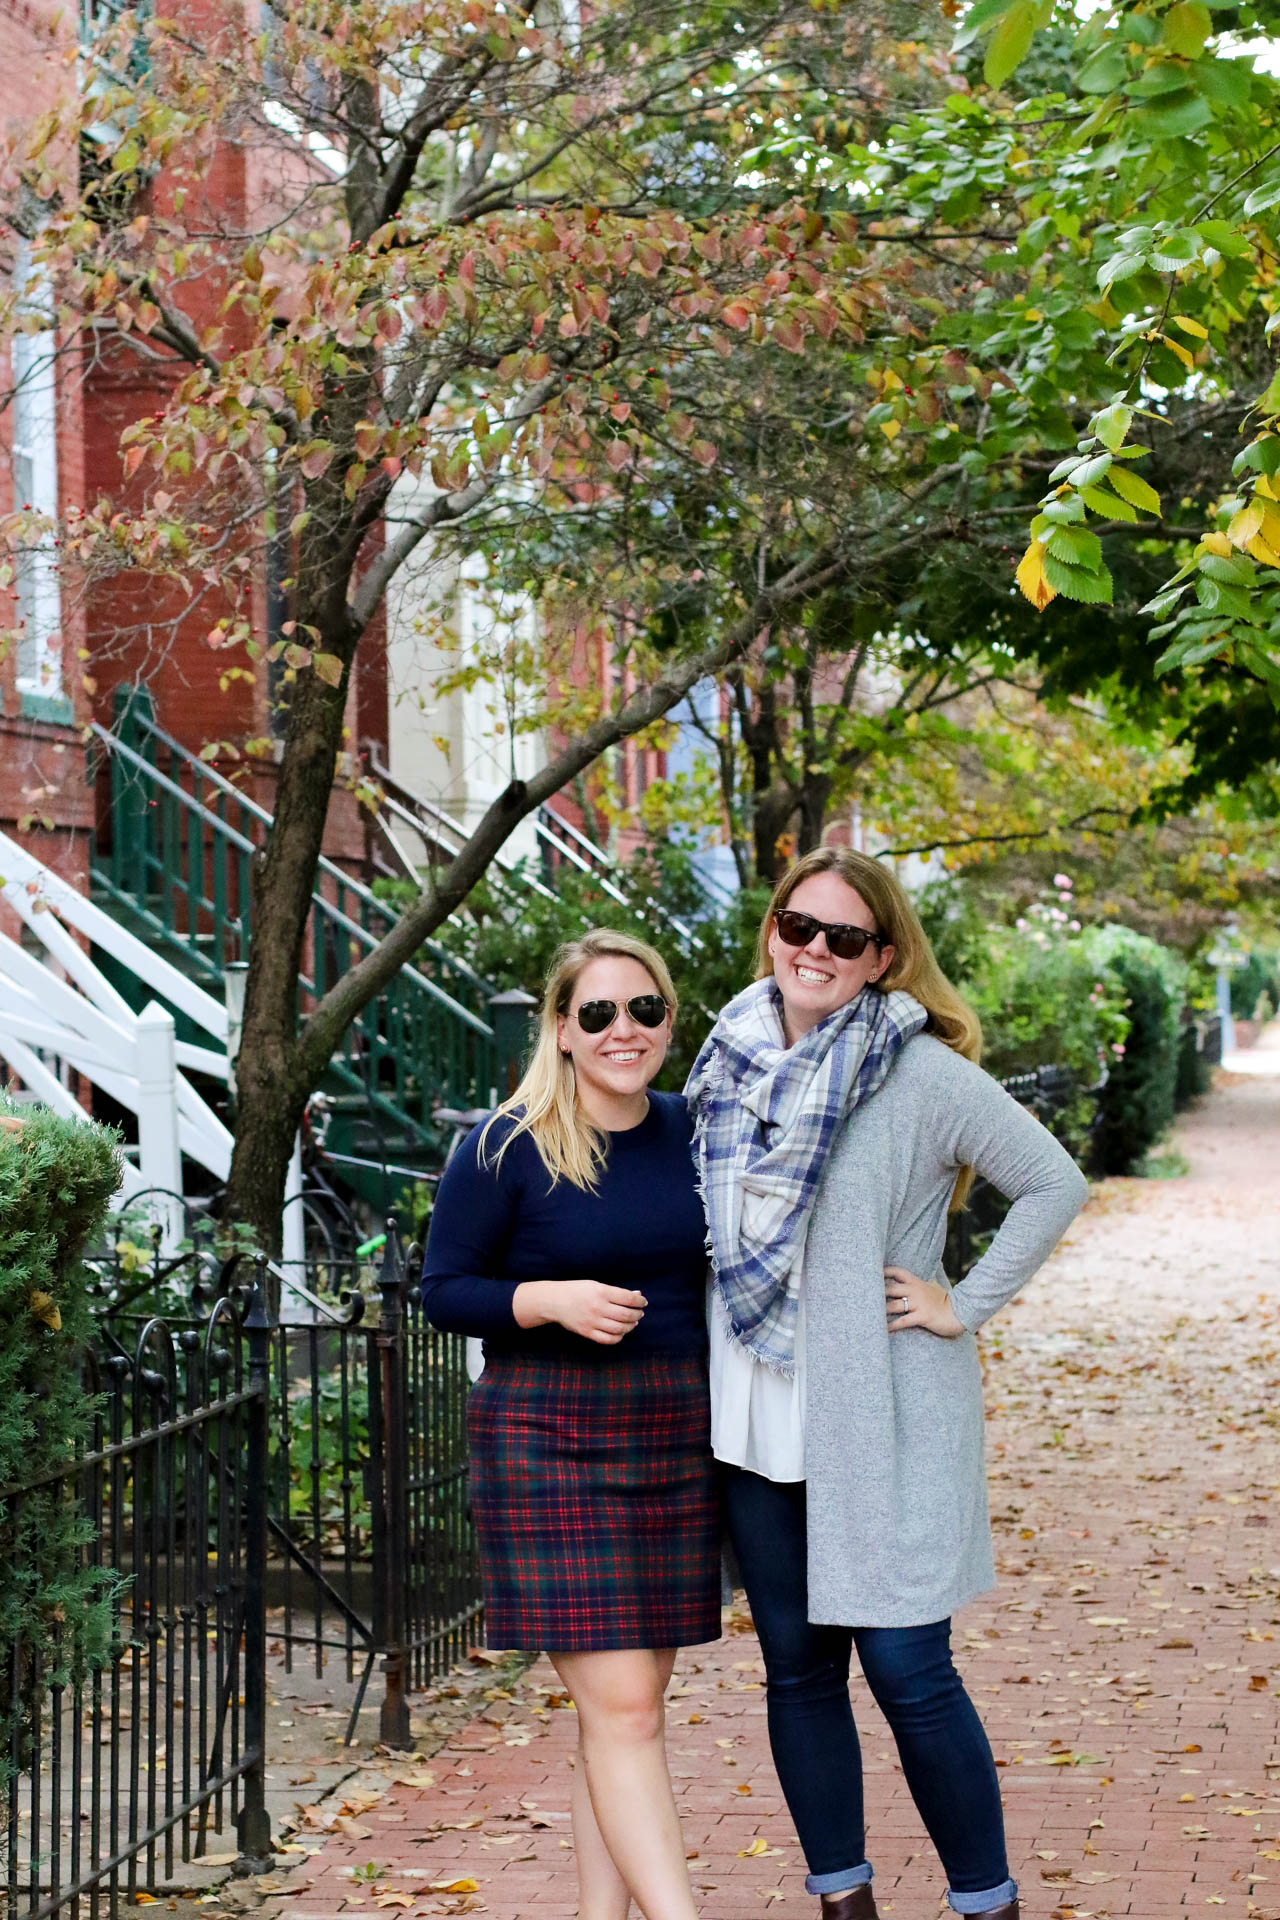 How to Survive Long Distance Best Friendship | @dcgirlinpearls